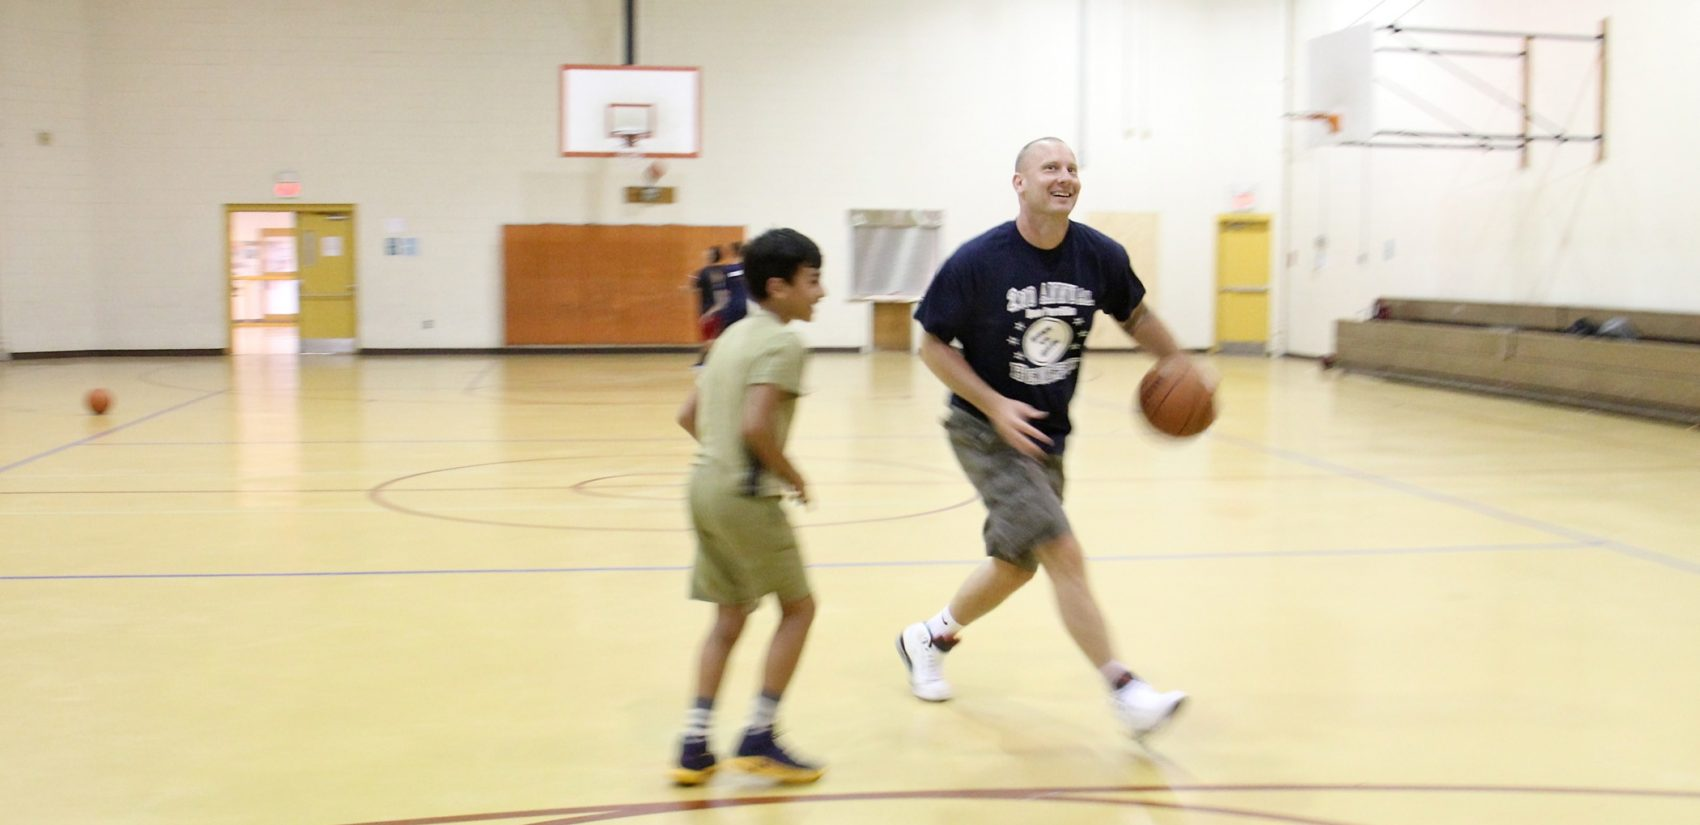 Anthony Famiglietti, coaching basketball at East Passyunk Community Rec Center.  (Emma Lee/WHYY)